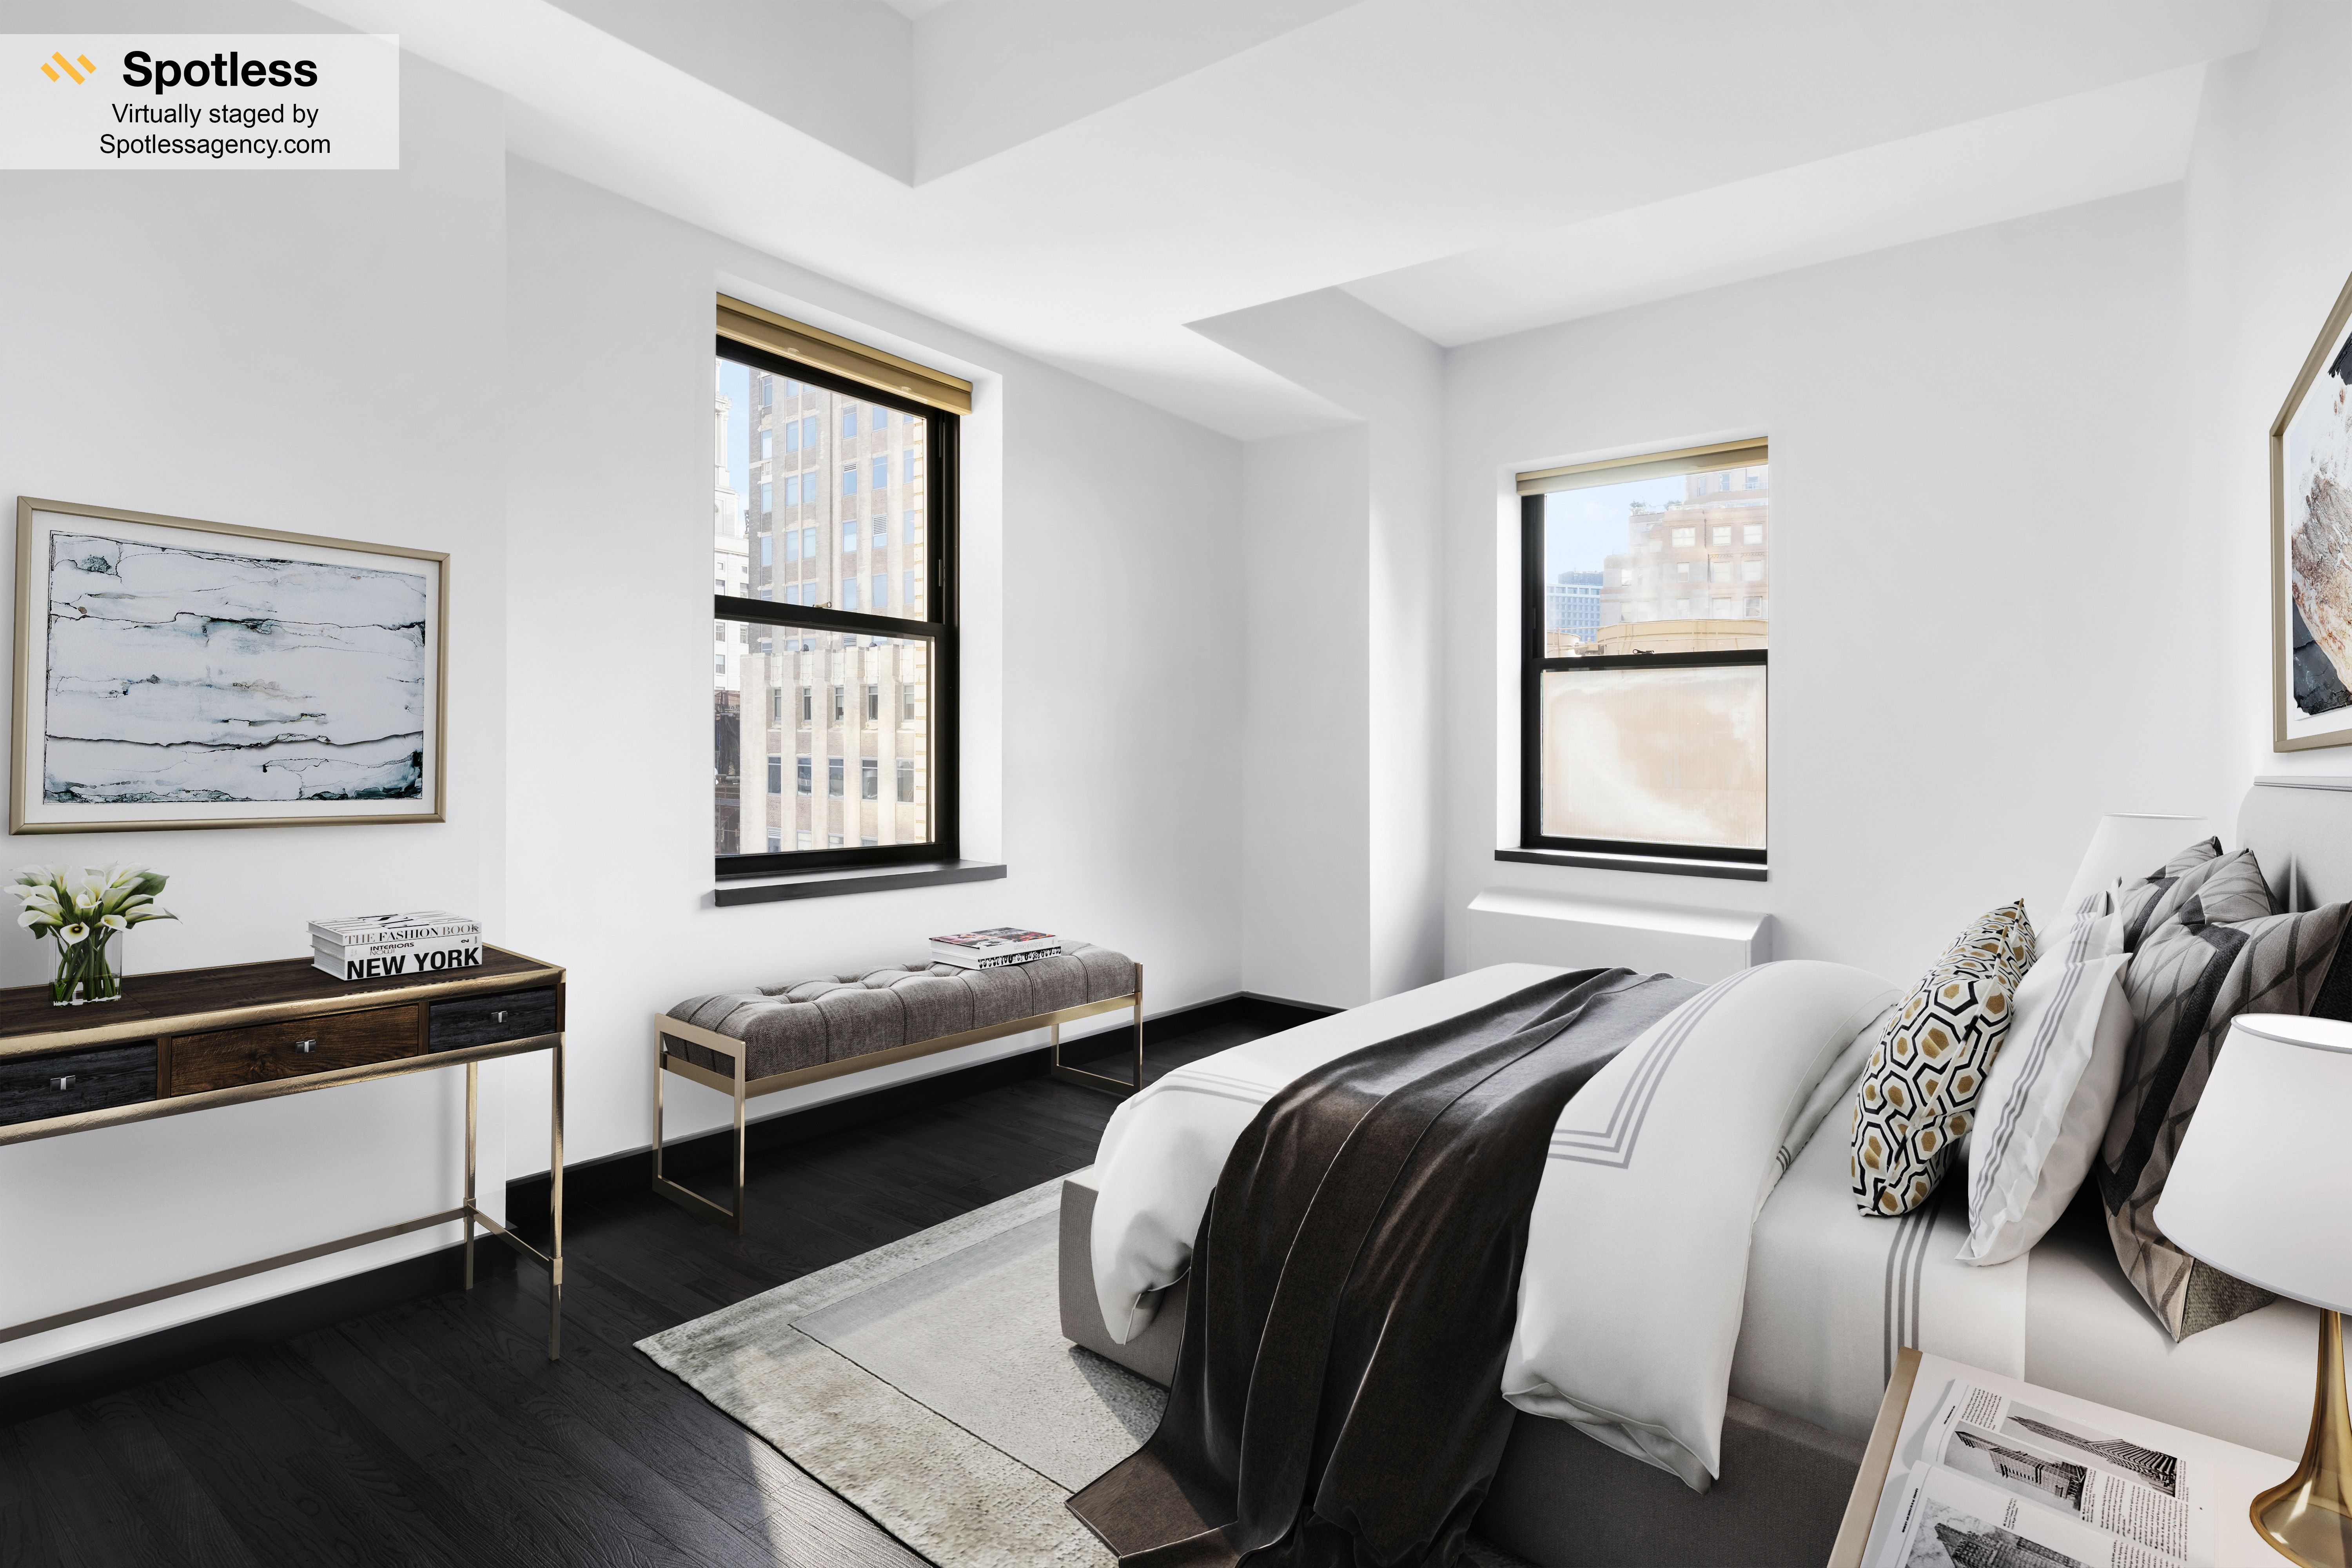 Virtual Staging Bedroom By Spotless Agency Virtualystaging